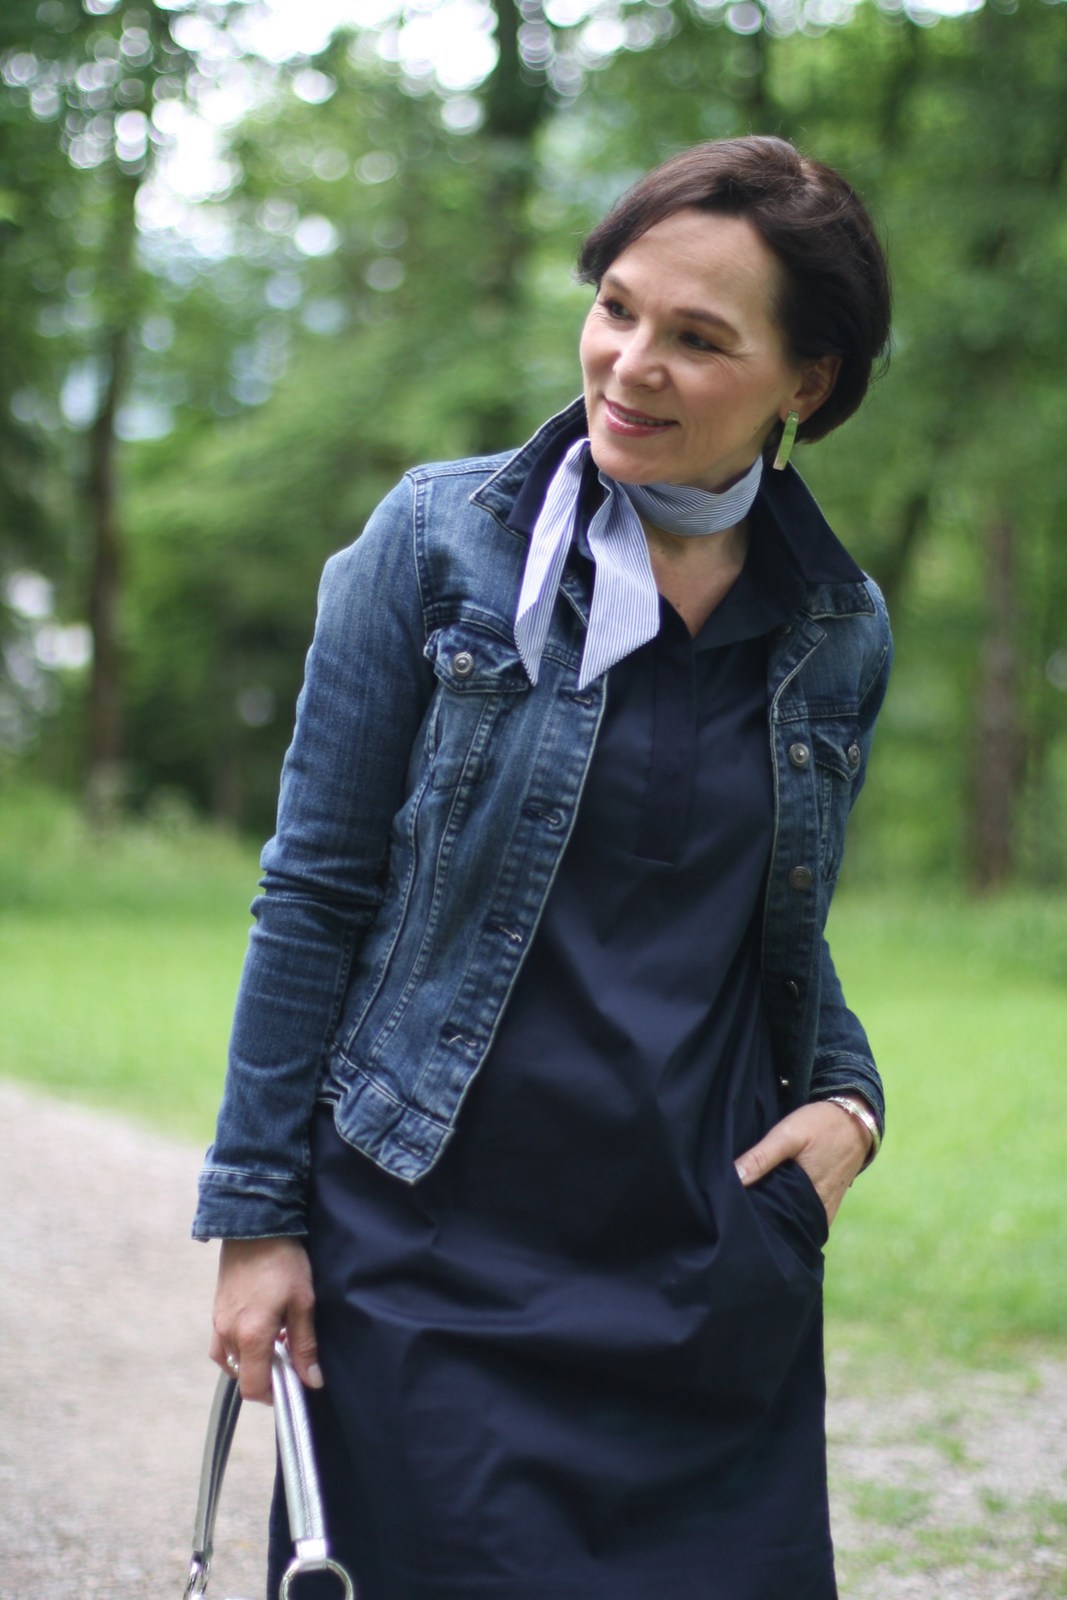 LadyofStyle COS Shirtdress Jeansjacket Weekend Look